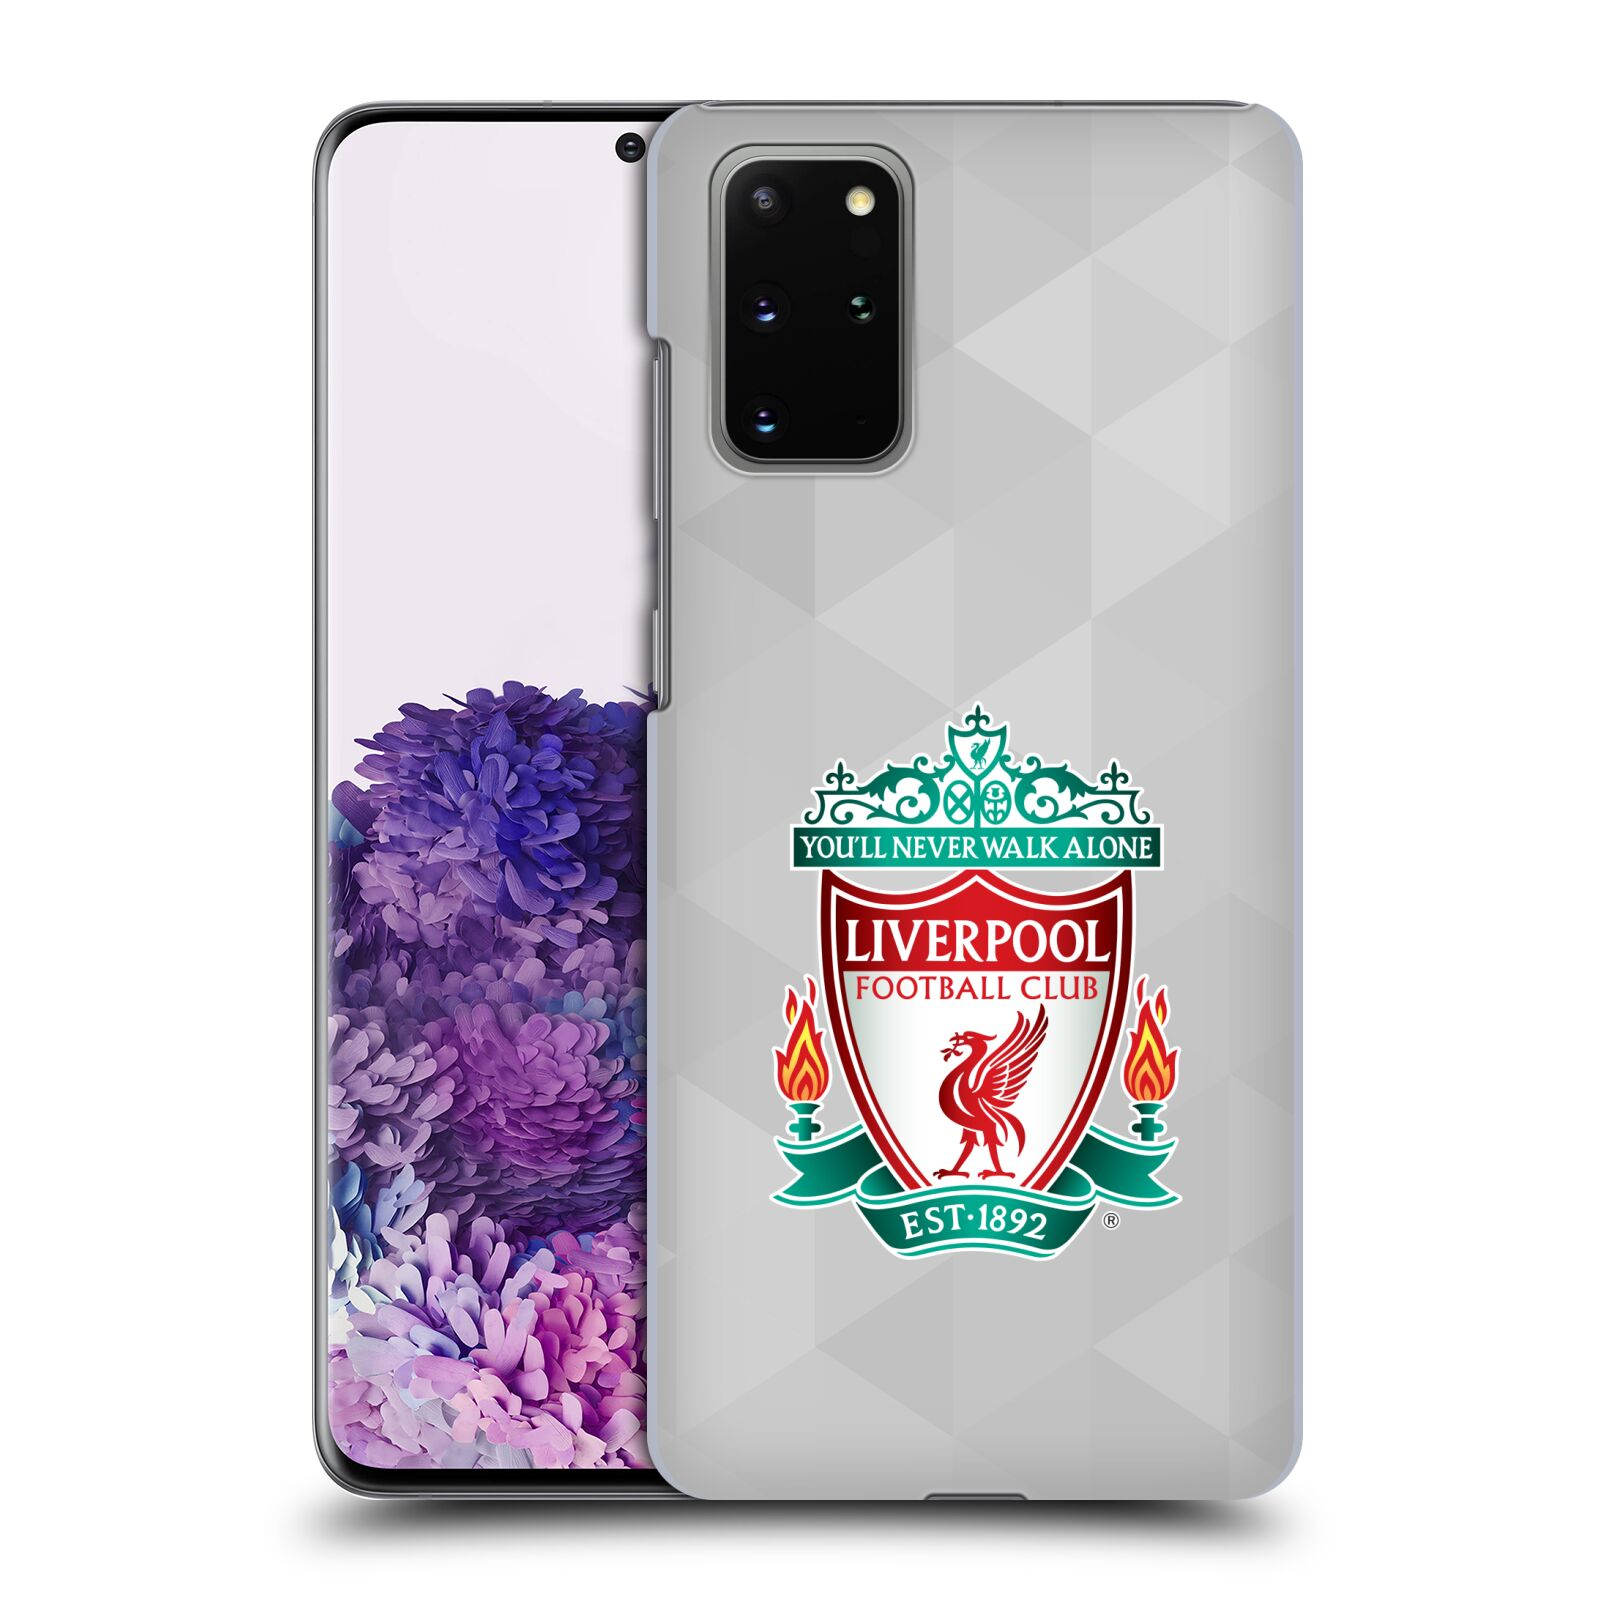 Plastové pouzdro na mobil Samsung Galaxy S20 Plus - Head Case - ZNAK LIVERPOOL FC OFFICIAL GEOMETRIC WHITE